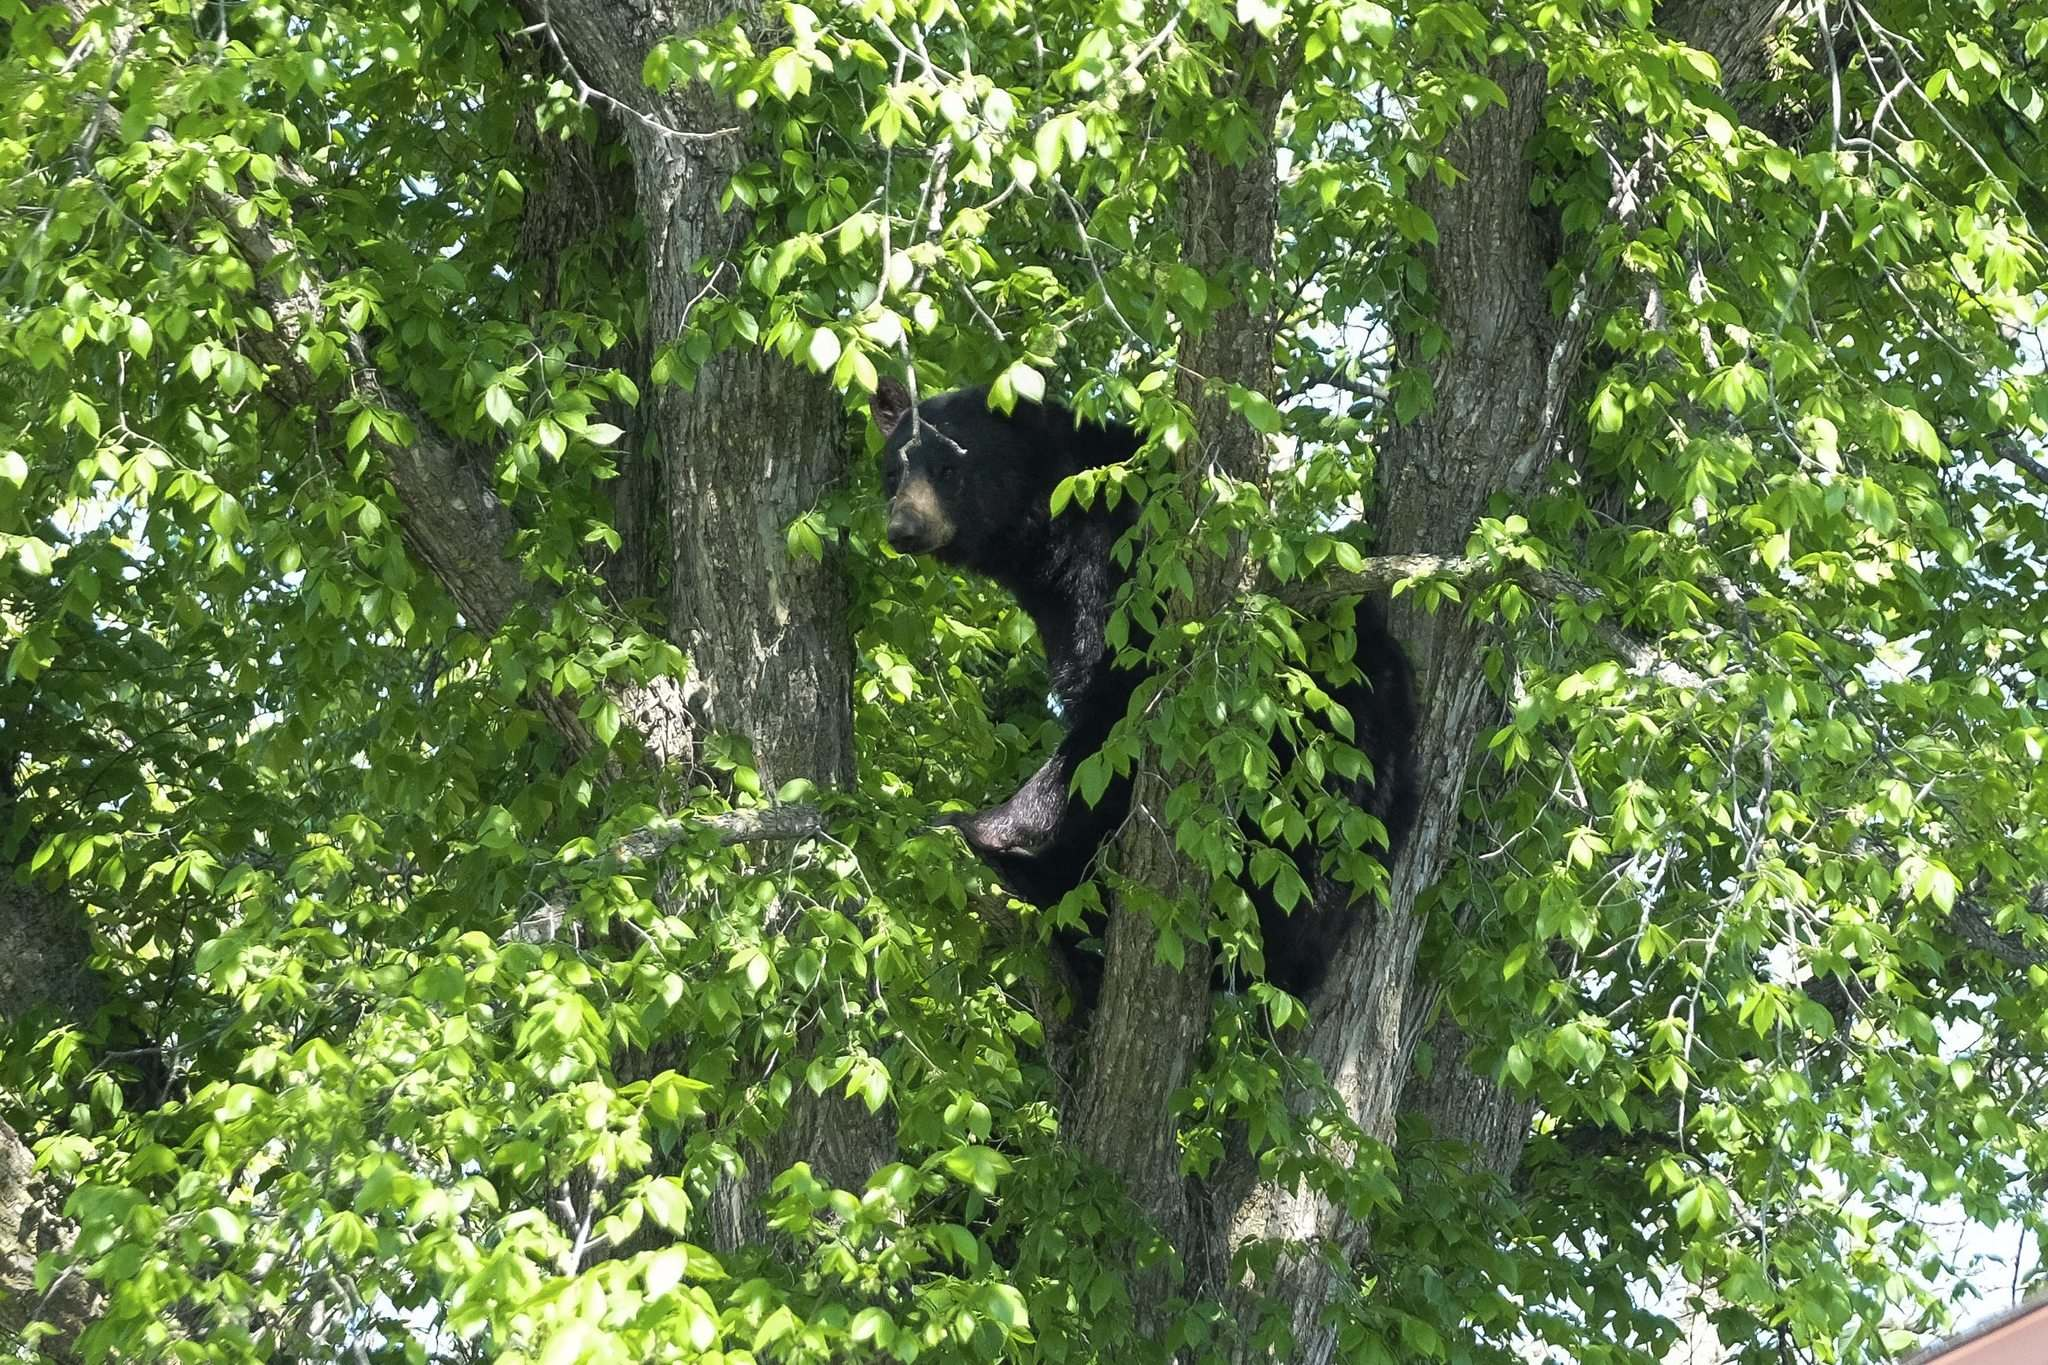 A black bear spends a better part of Saturday up in a tree on Pepperloaf Crescent as members of the Winnipeg Police Service re-directed traffic and Manitoba Conservation officers evaluated the situation. (Daniel Crump / Winnipeg Free Press)</p>